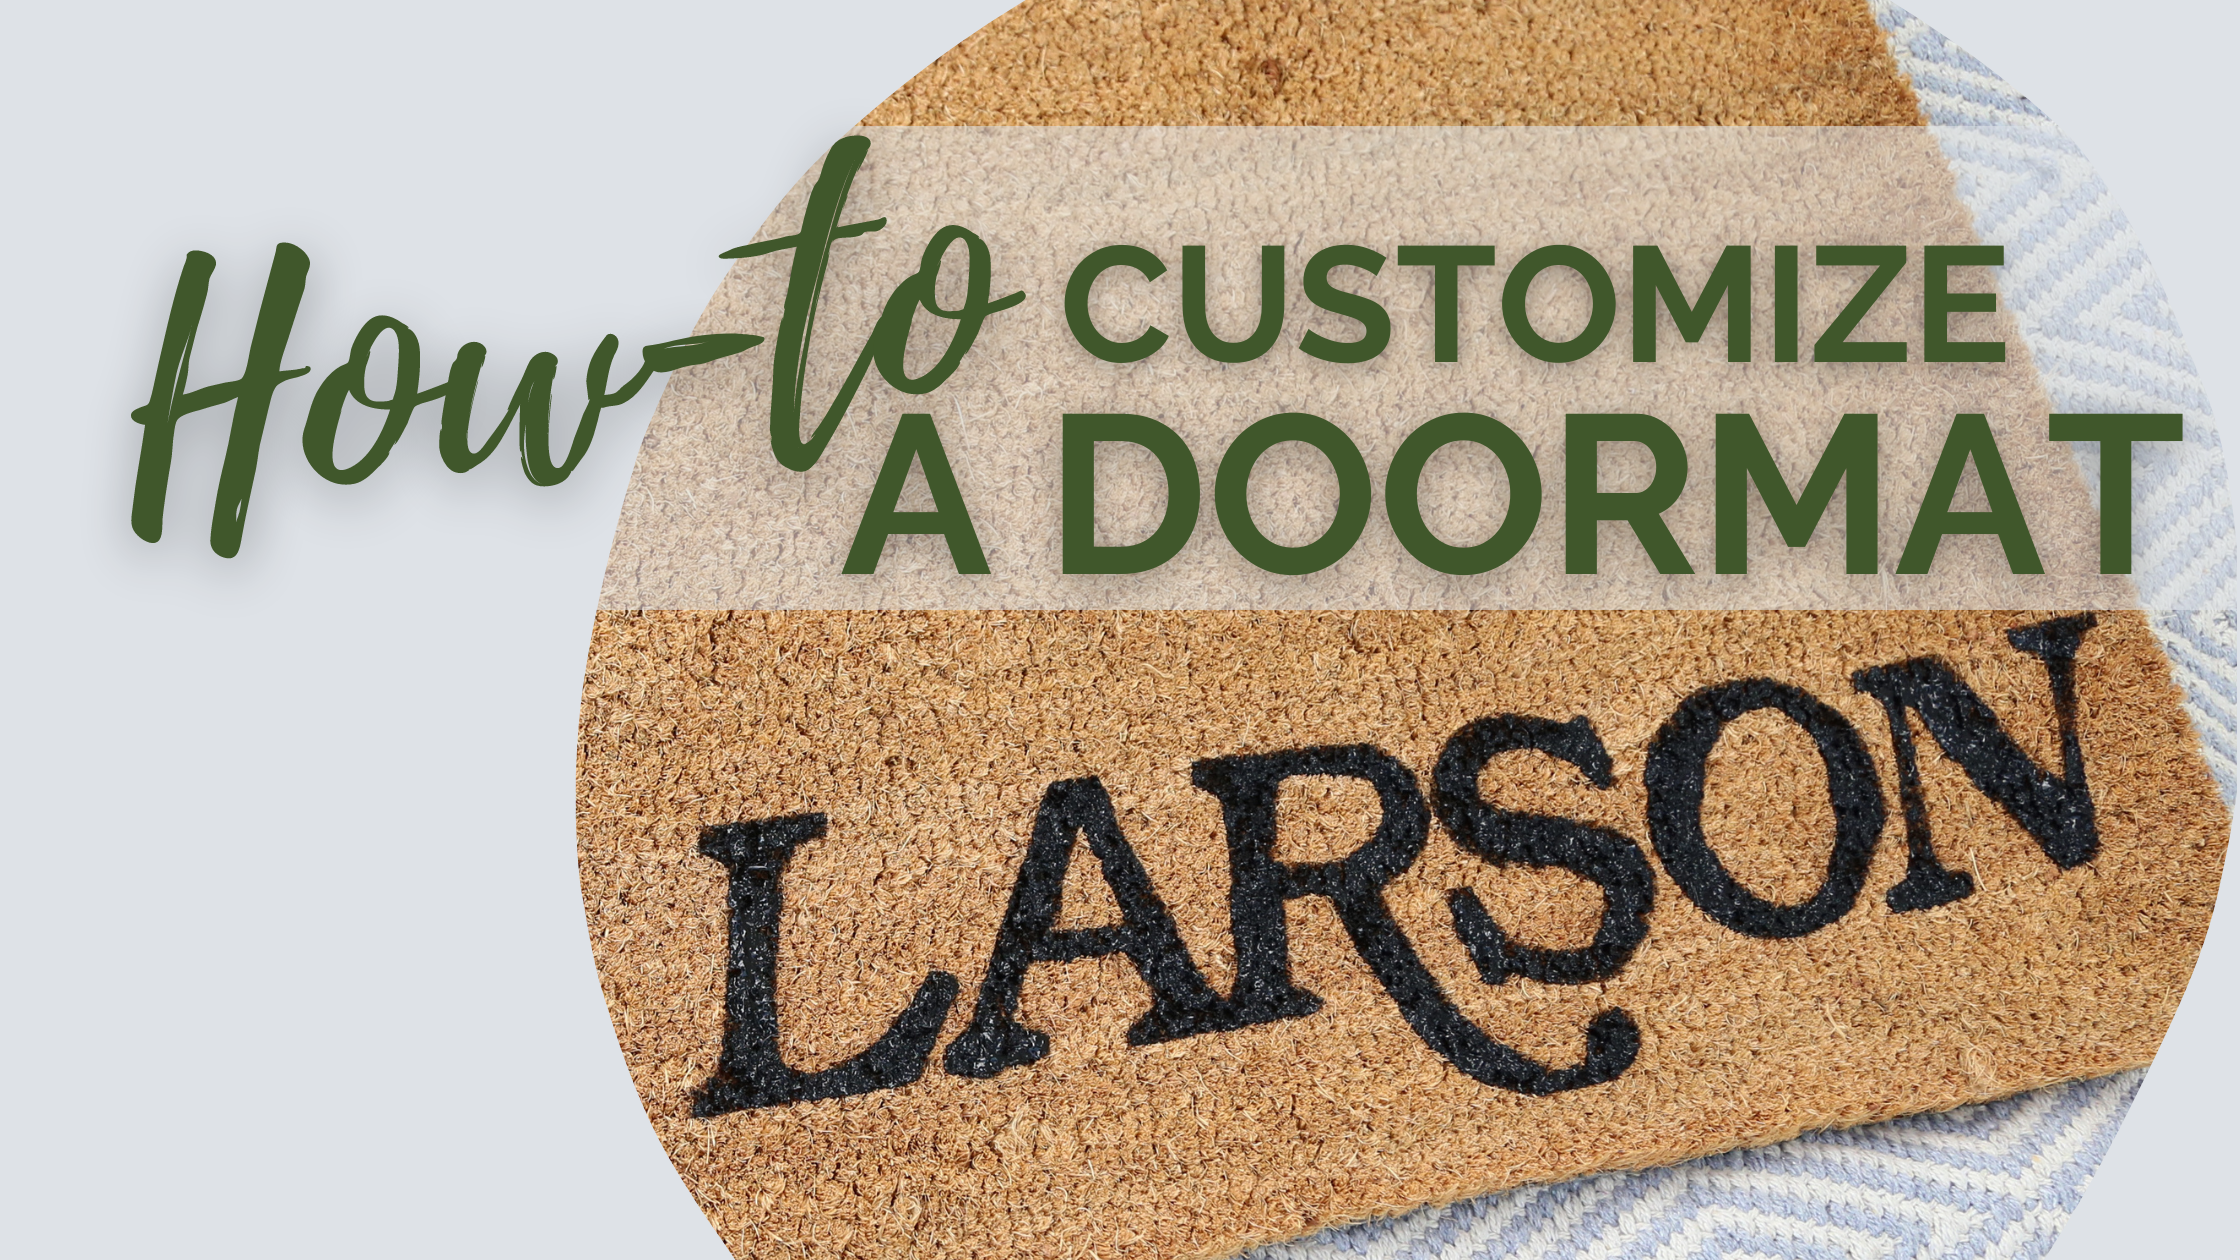 How-to Customize a Doormat